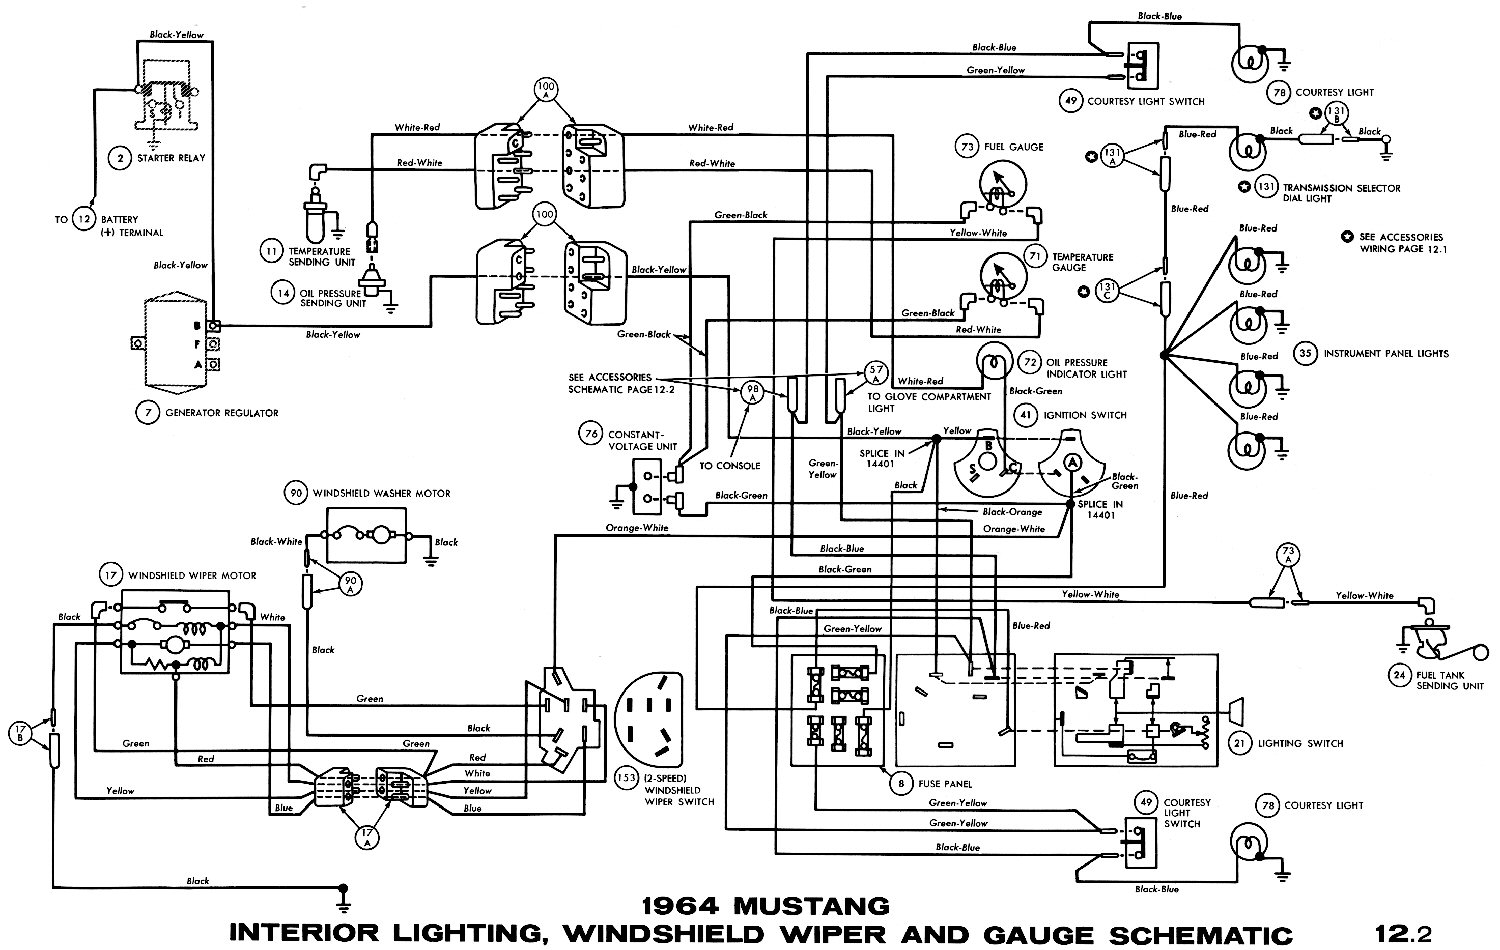 1964k 1964 mustang wiring diagrams average joe restoration 66 mustang wiring diagram at nearapp.co